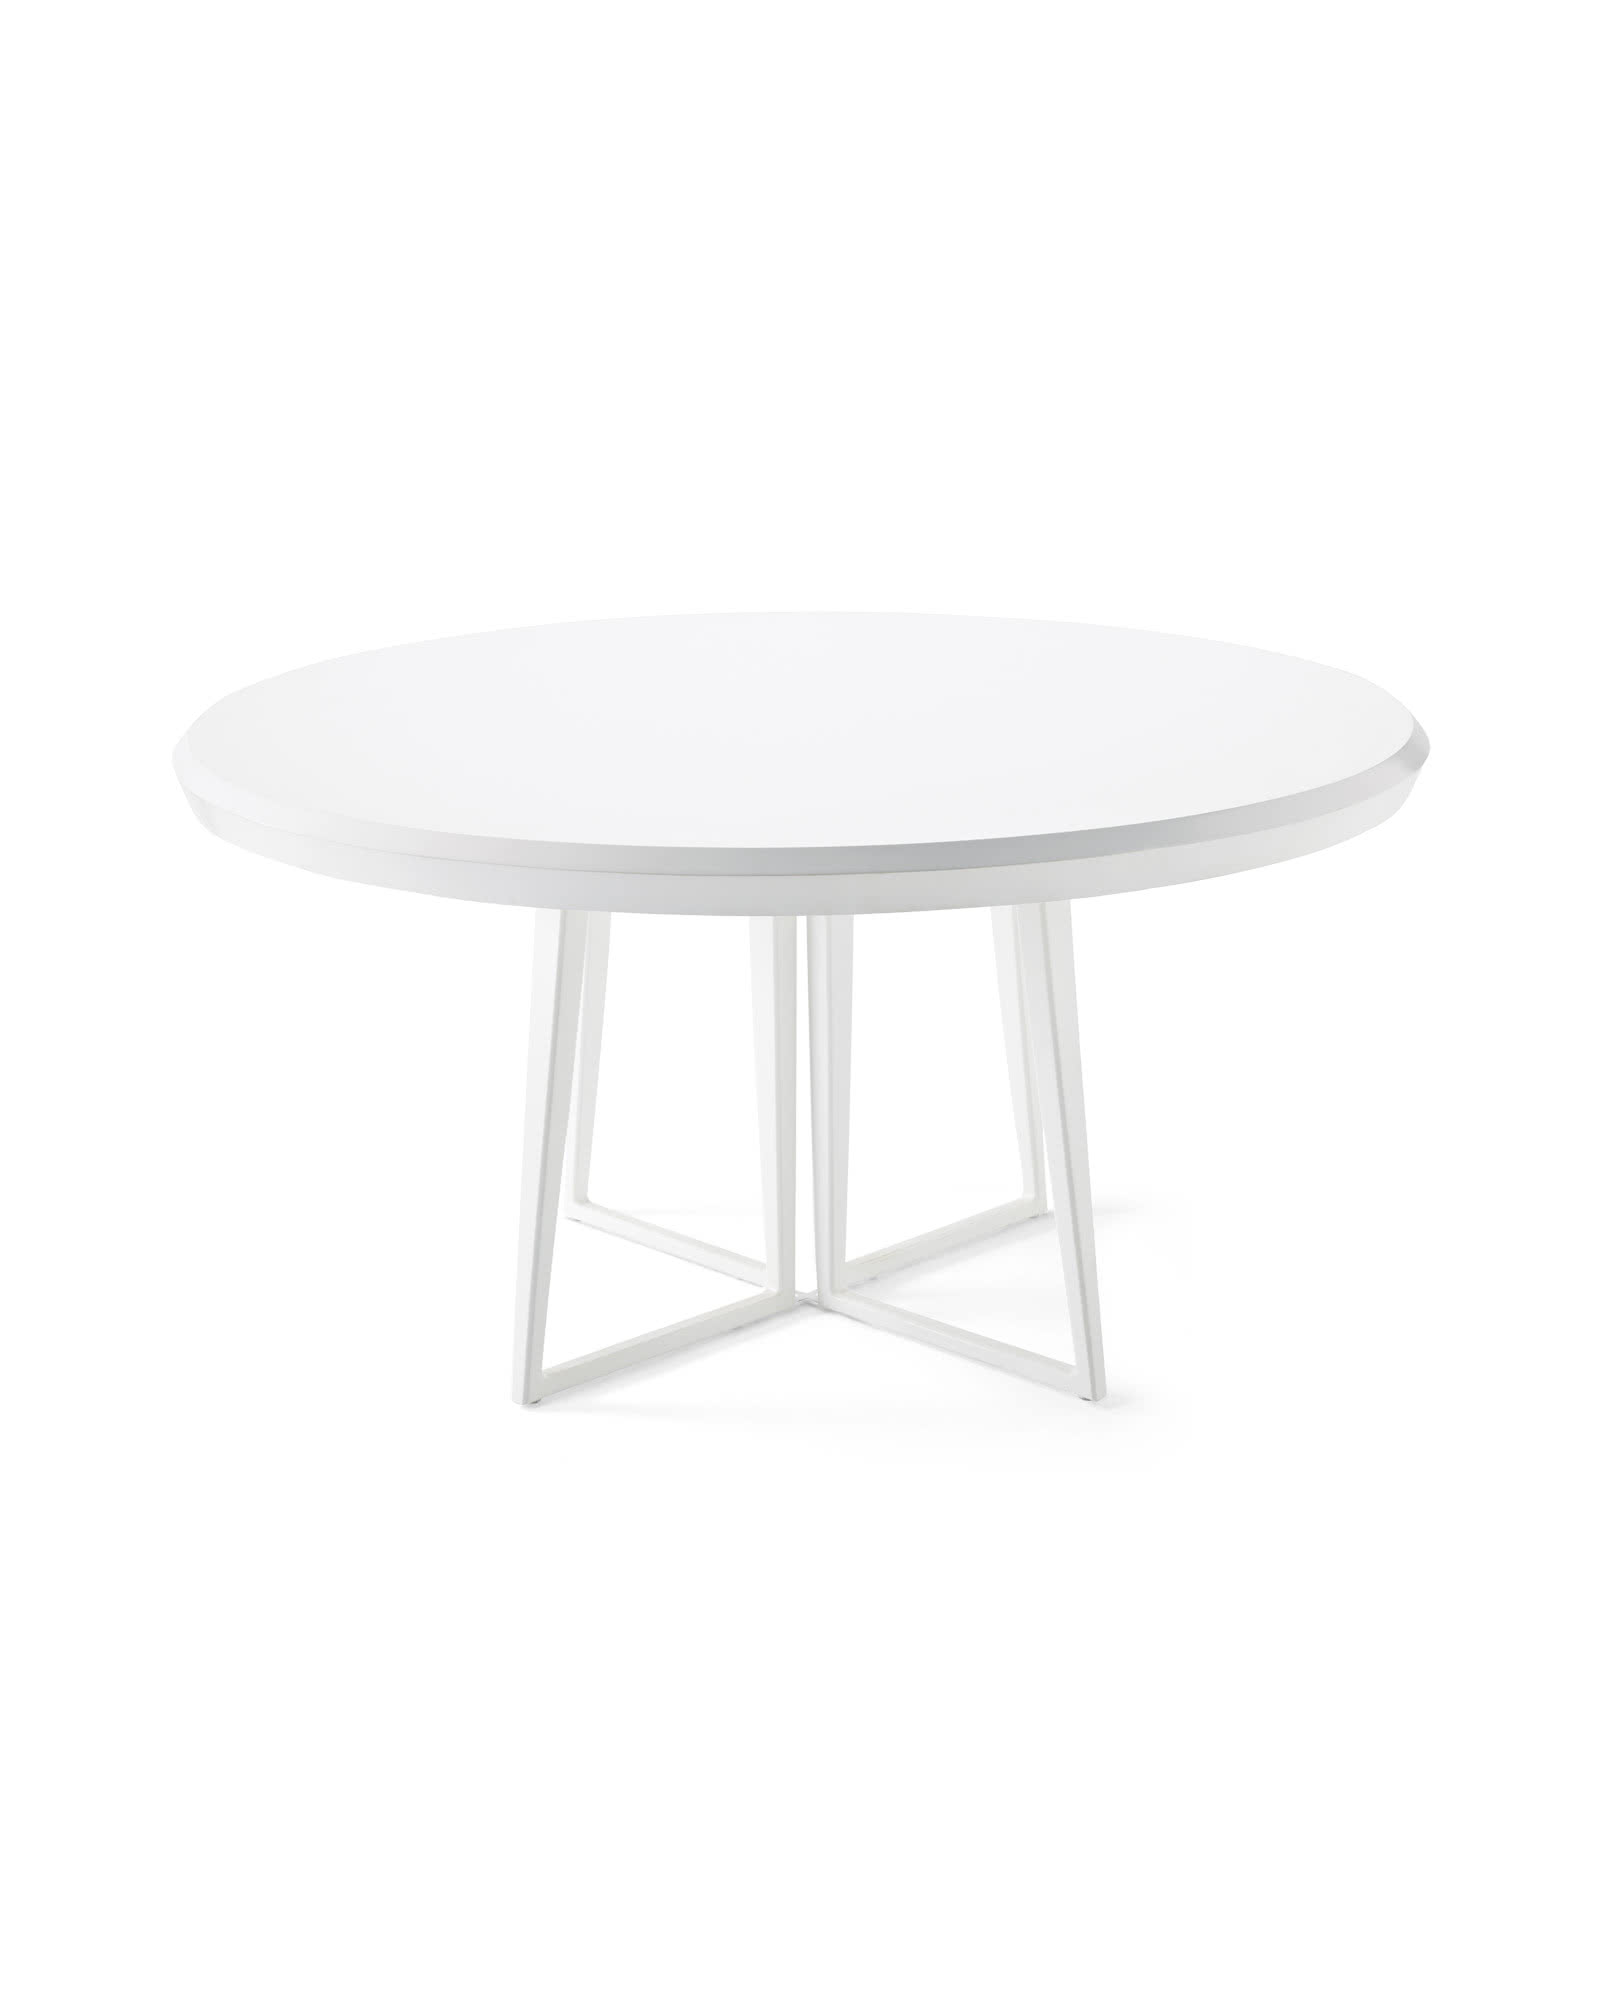 "Downing 60"" Dining Table, White"